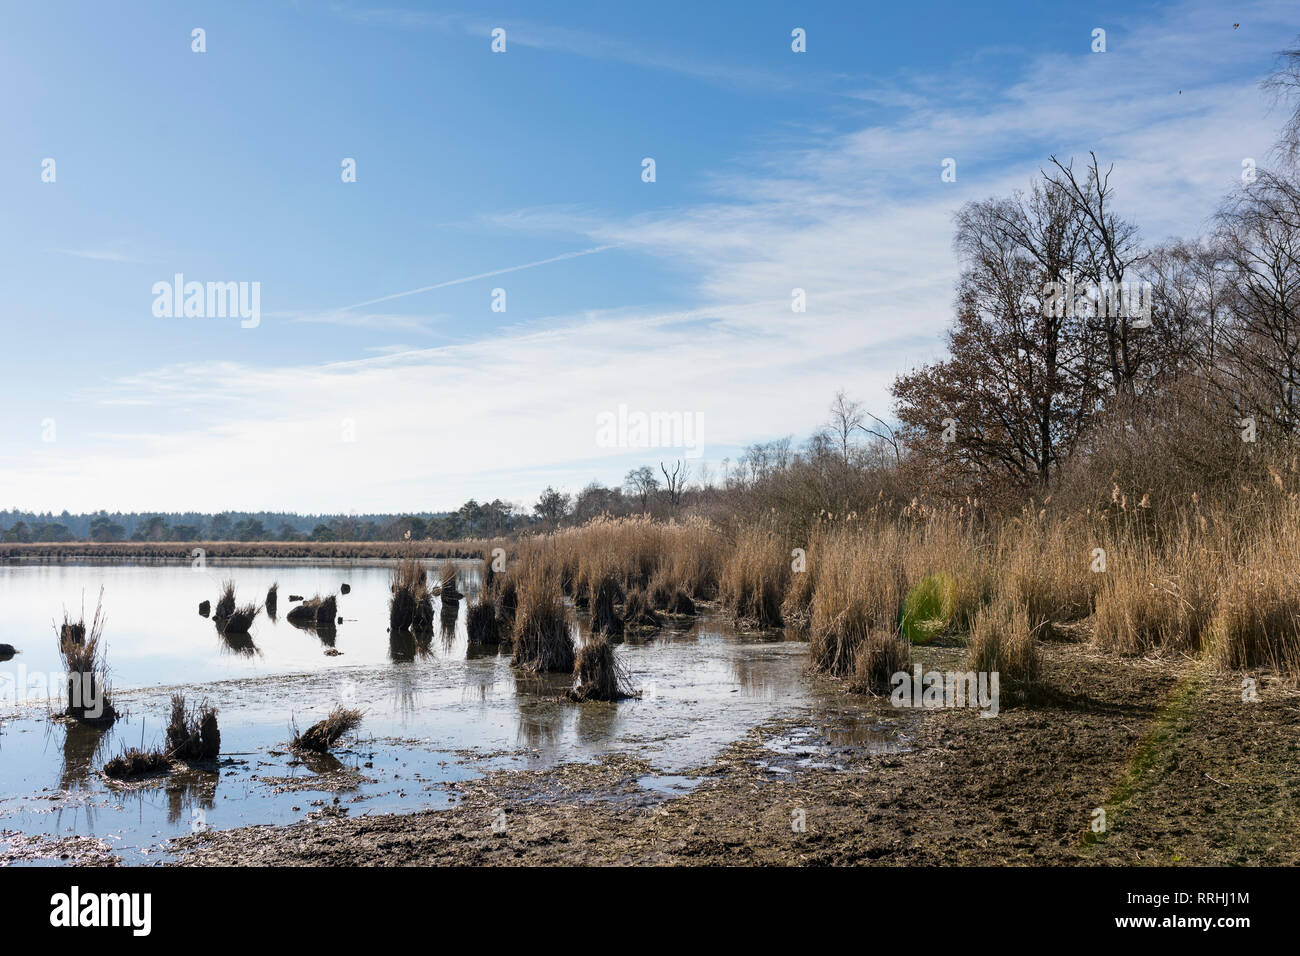 Water shortage at a lake at 'Cartierheide' in winter, due to 2018 summer drought and a dry winter - Stock Image